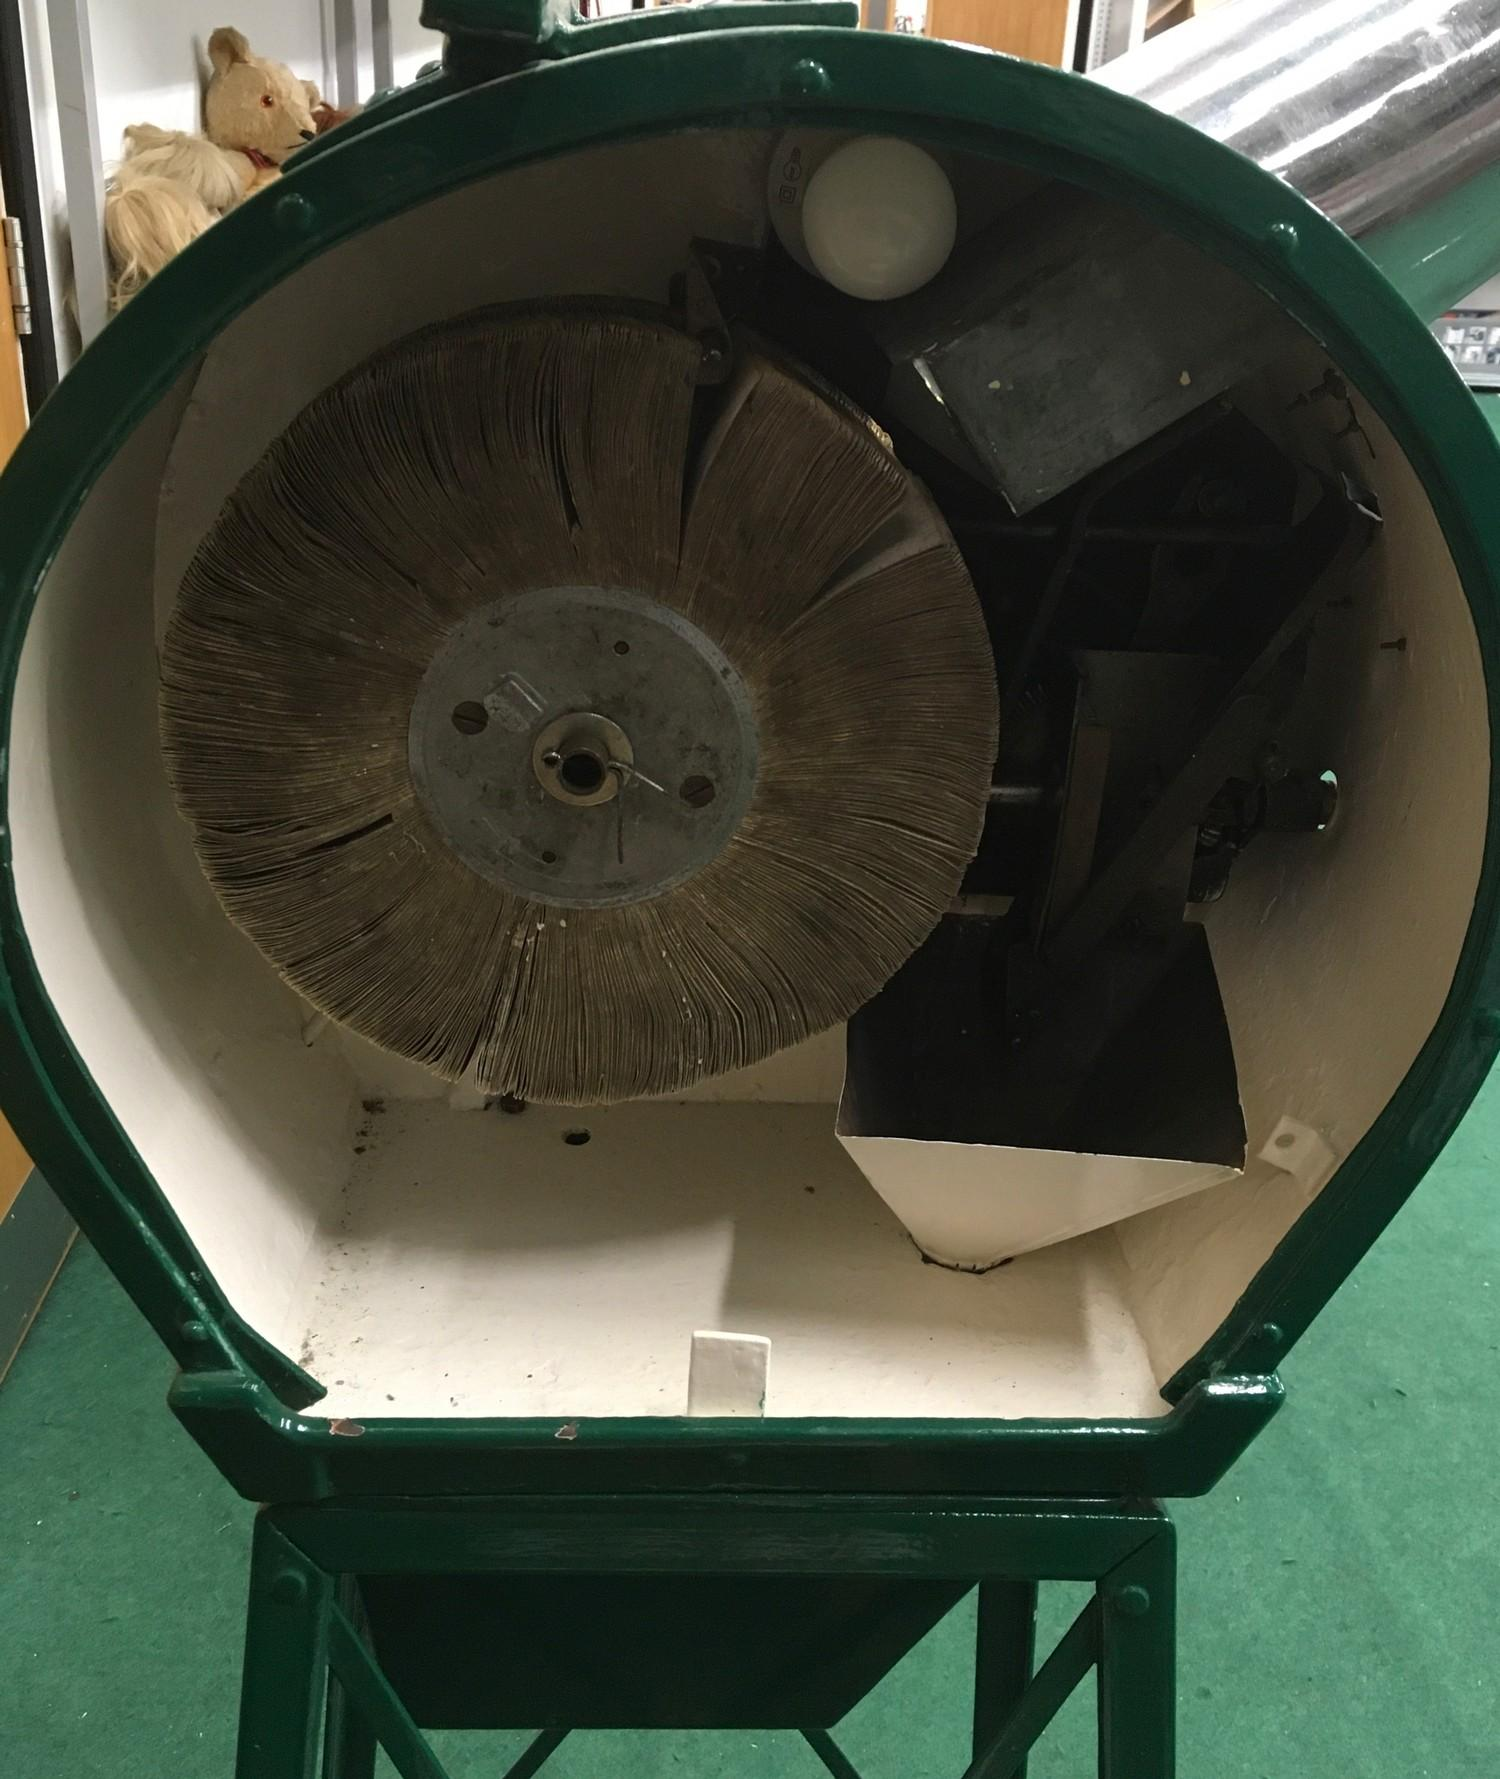 Mutoscope Viewer with Girly Reel - working, with key, on old 1d. - Image 3 of 3